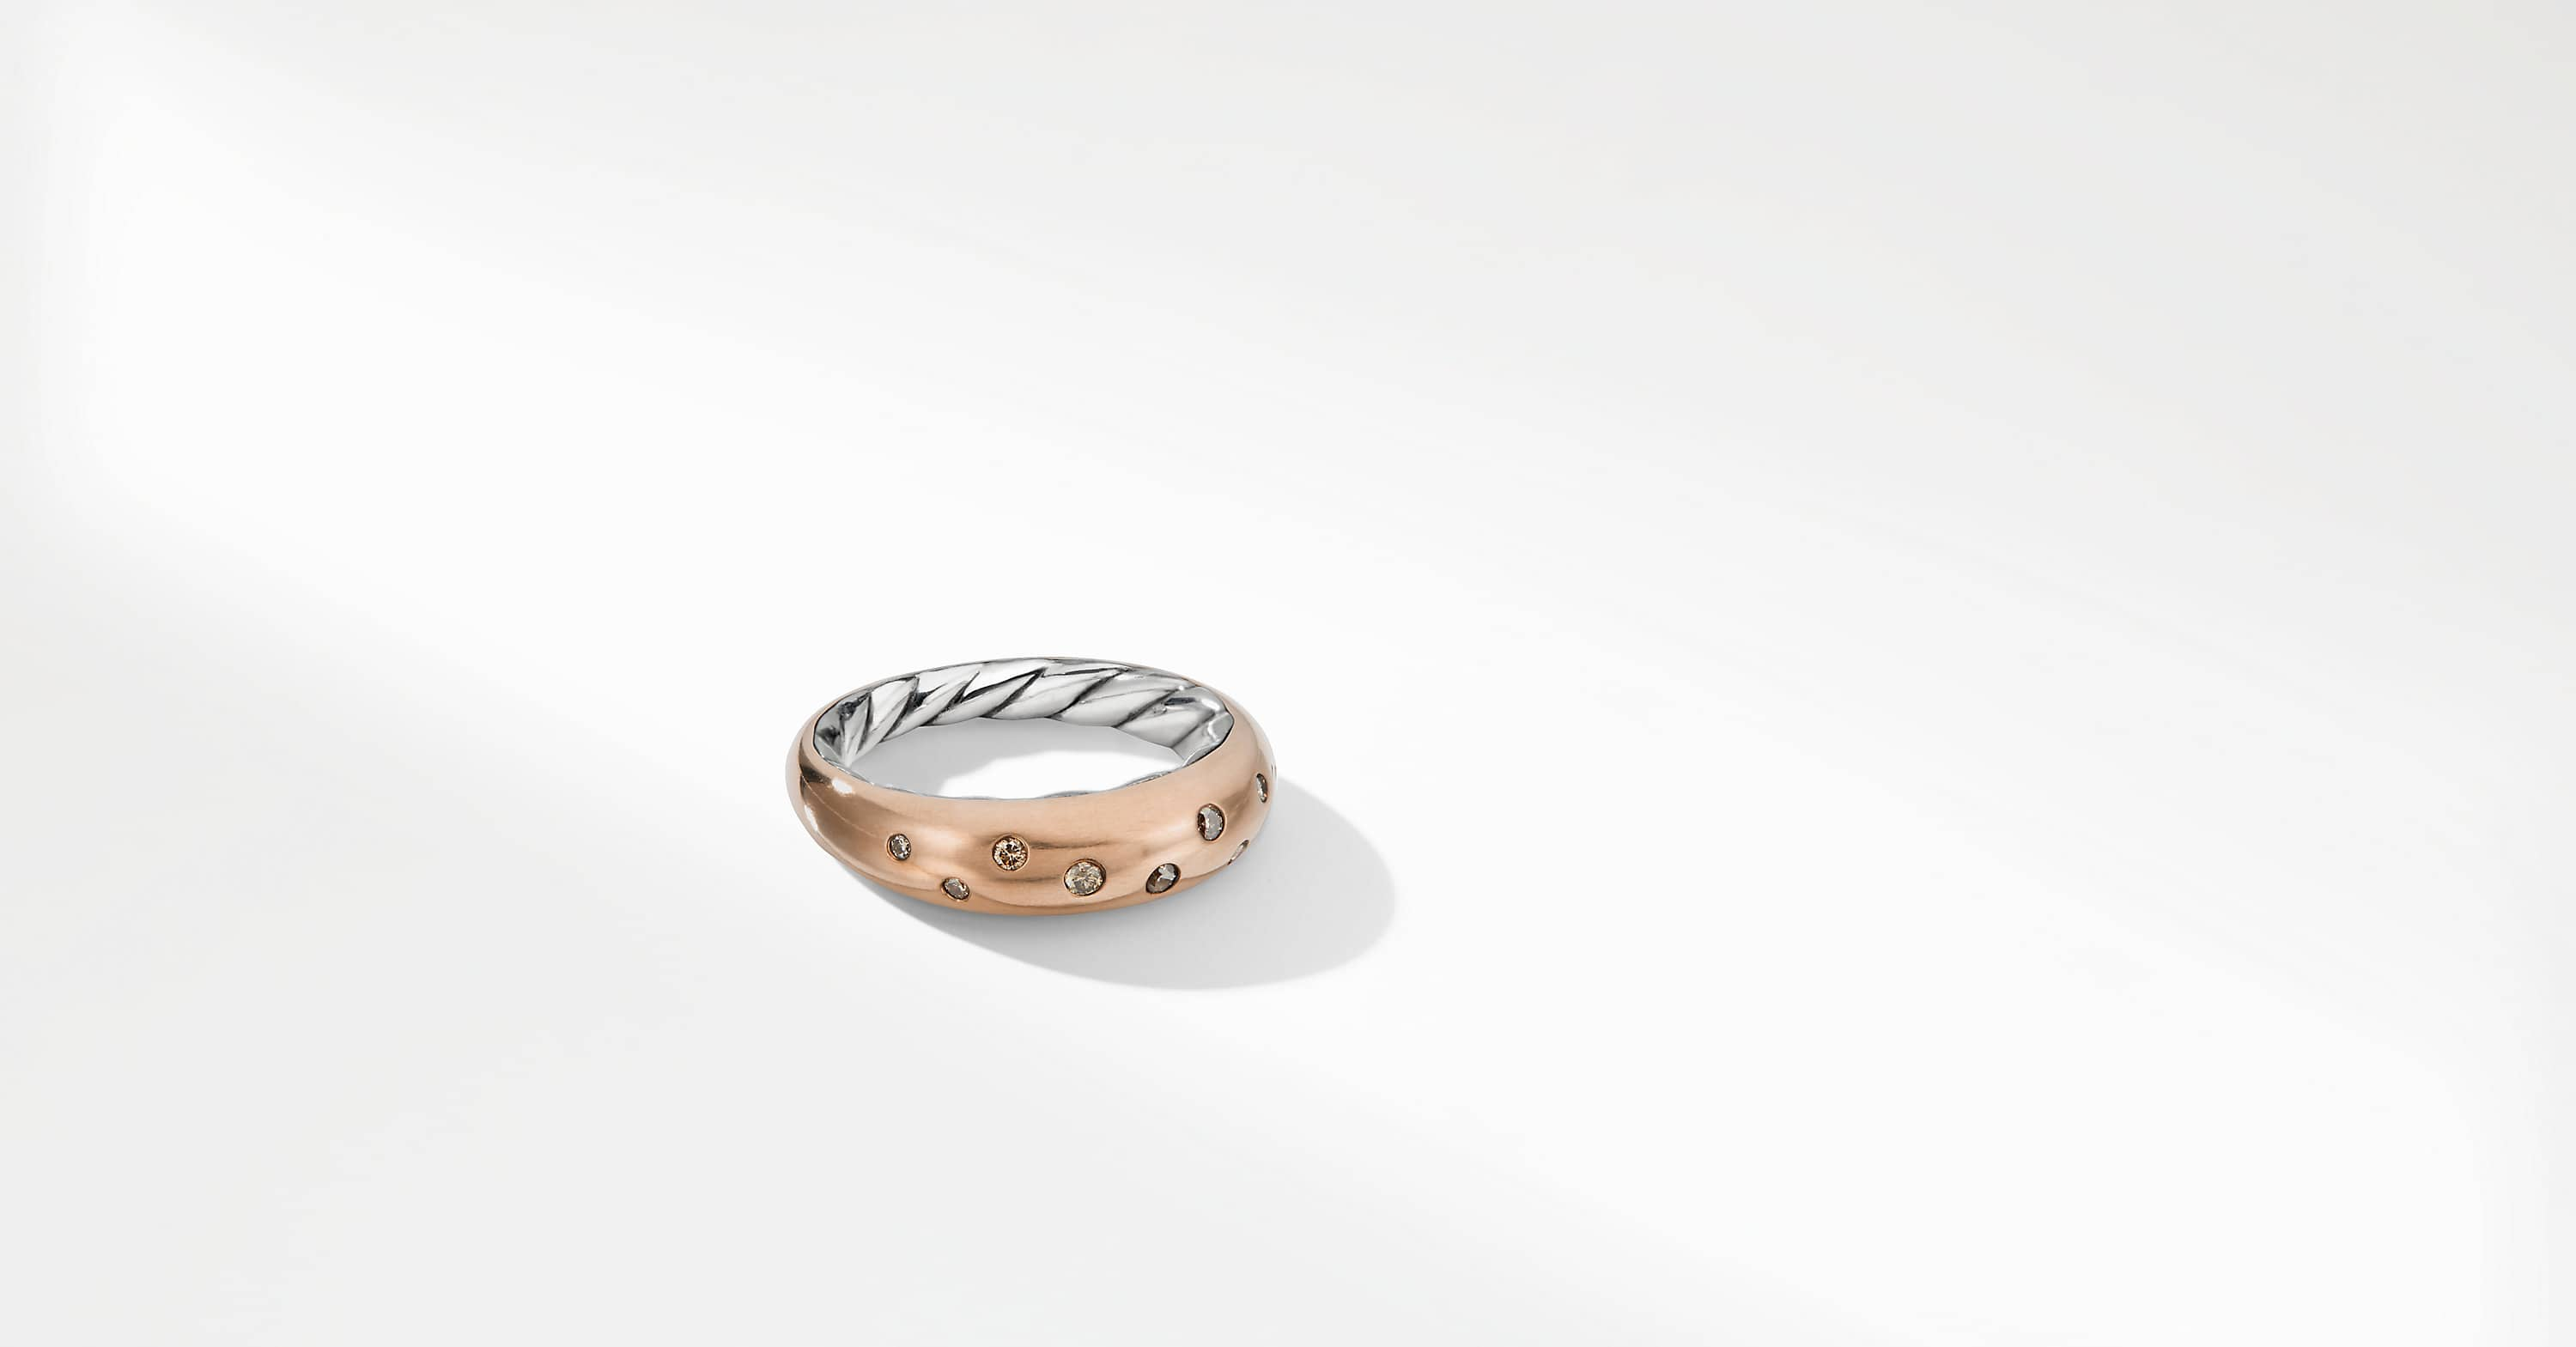 Pure Form Mixed Metal Single Row Ring with Diamonds